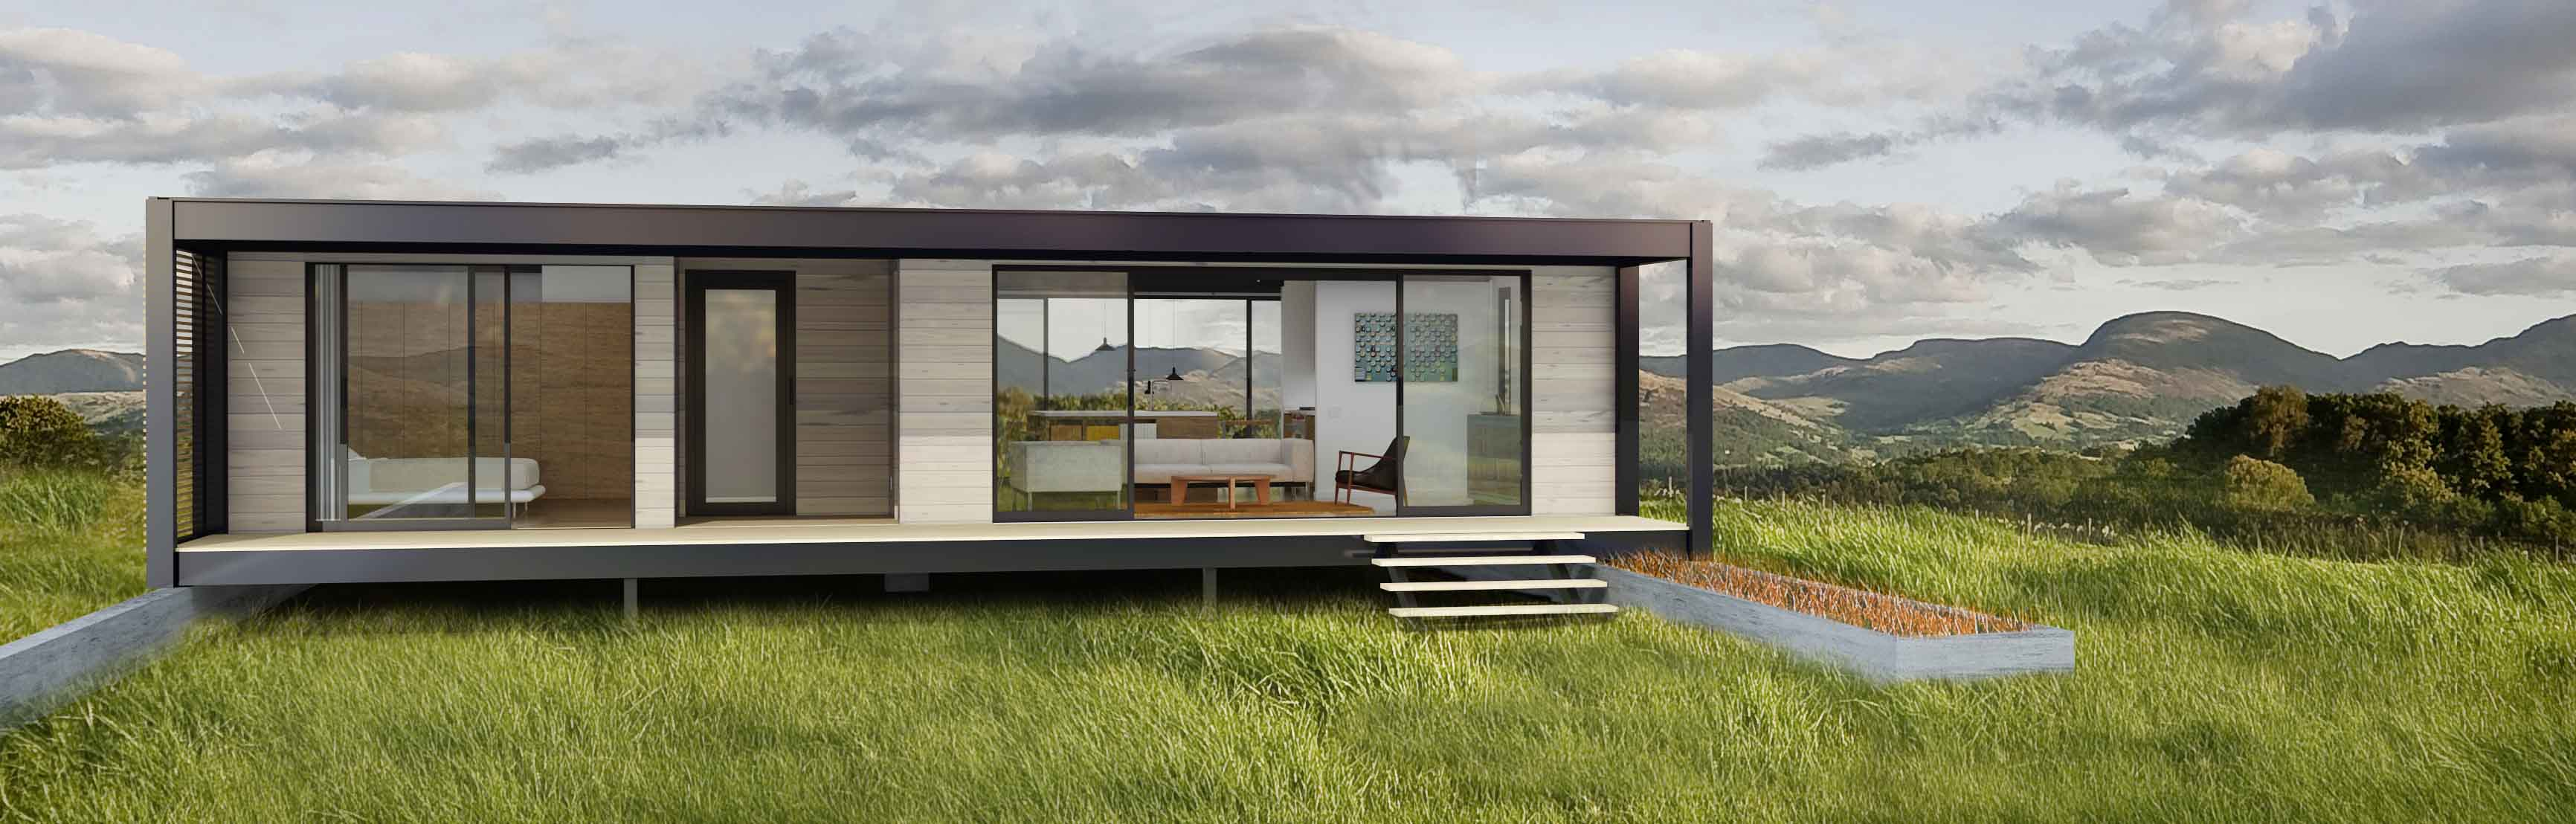 Container Homes | Shipping Container House for sale in